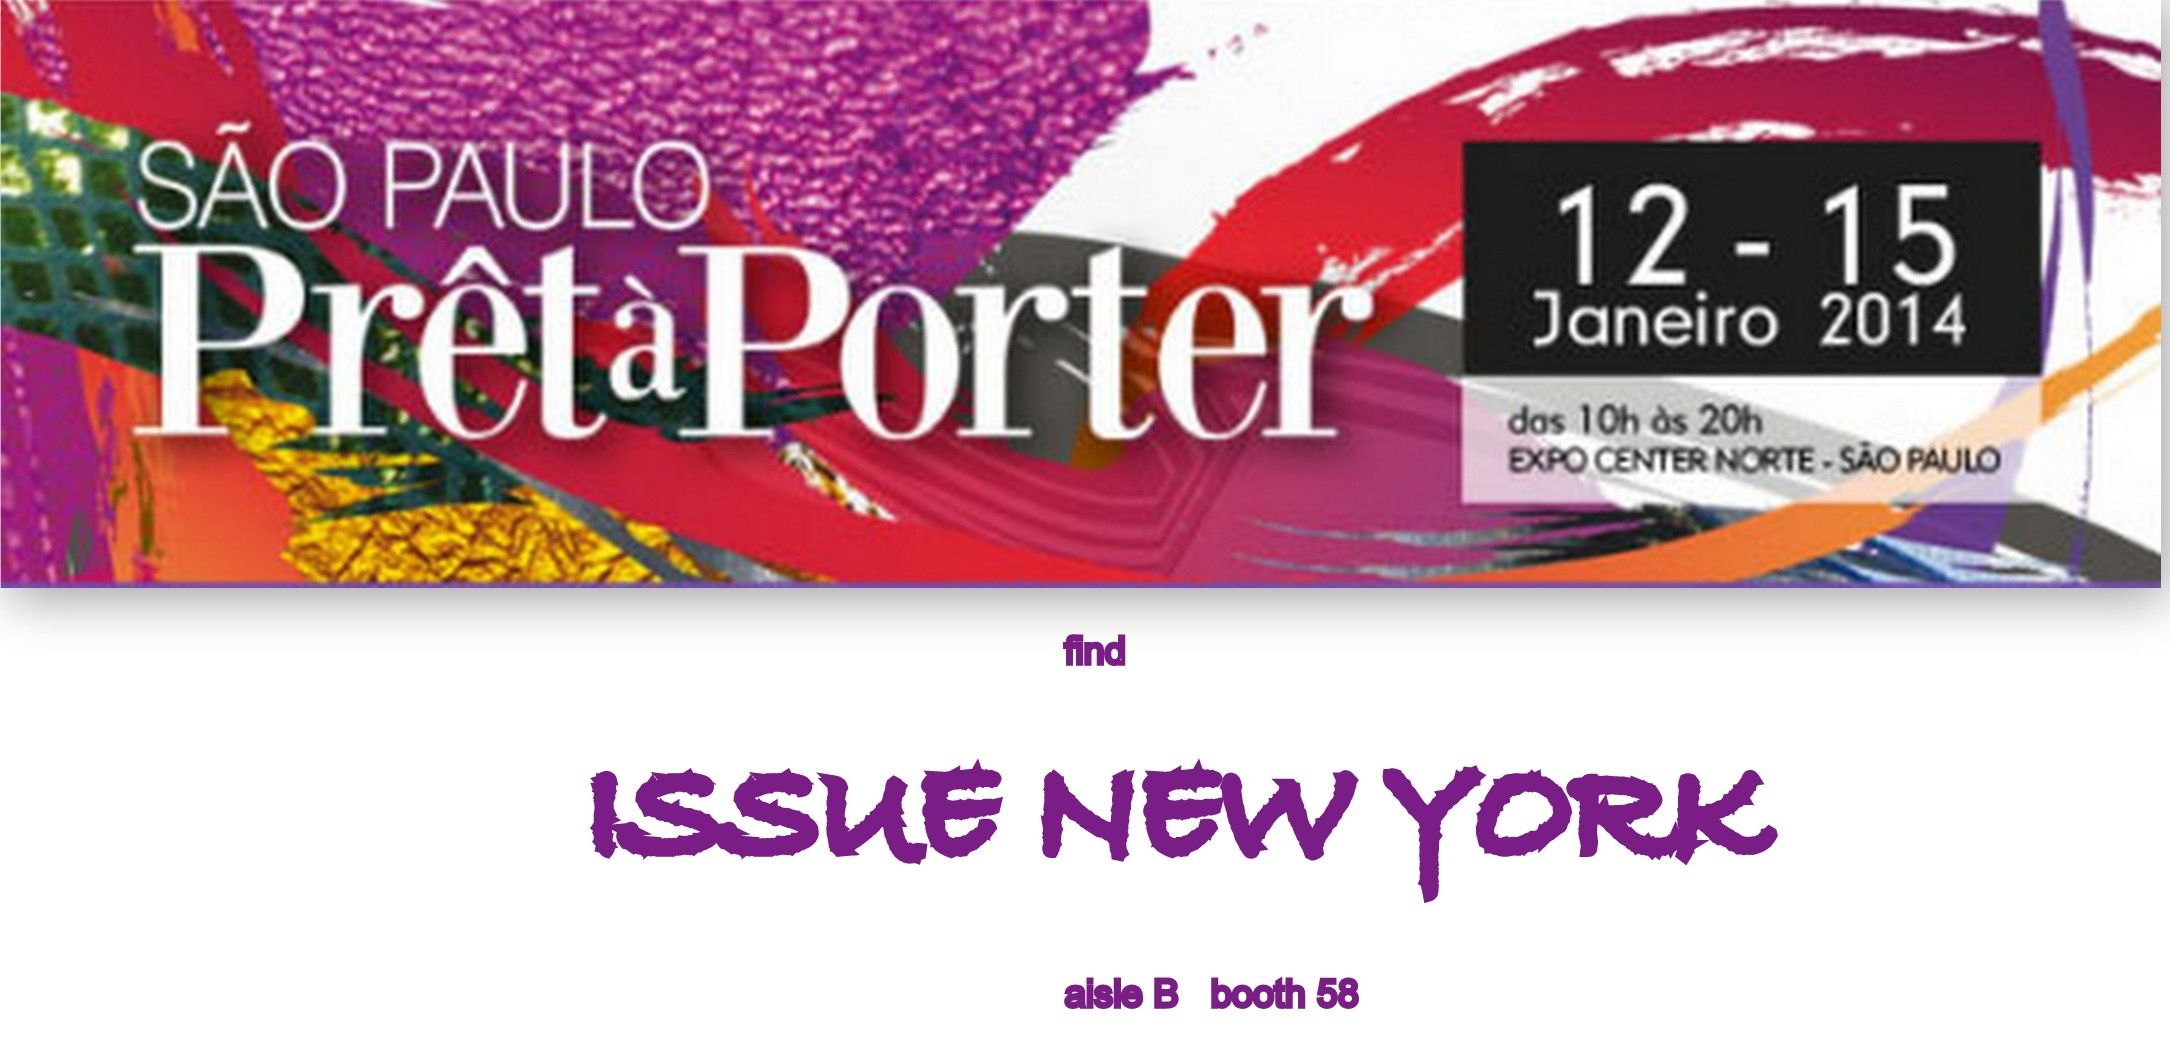 Como vai voce, join us in Brazil for São Paulo Prêt-à-PorterJanuary 12-15 Register NOWhttp://www.saopaulopretaporter.com/